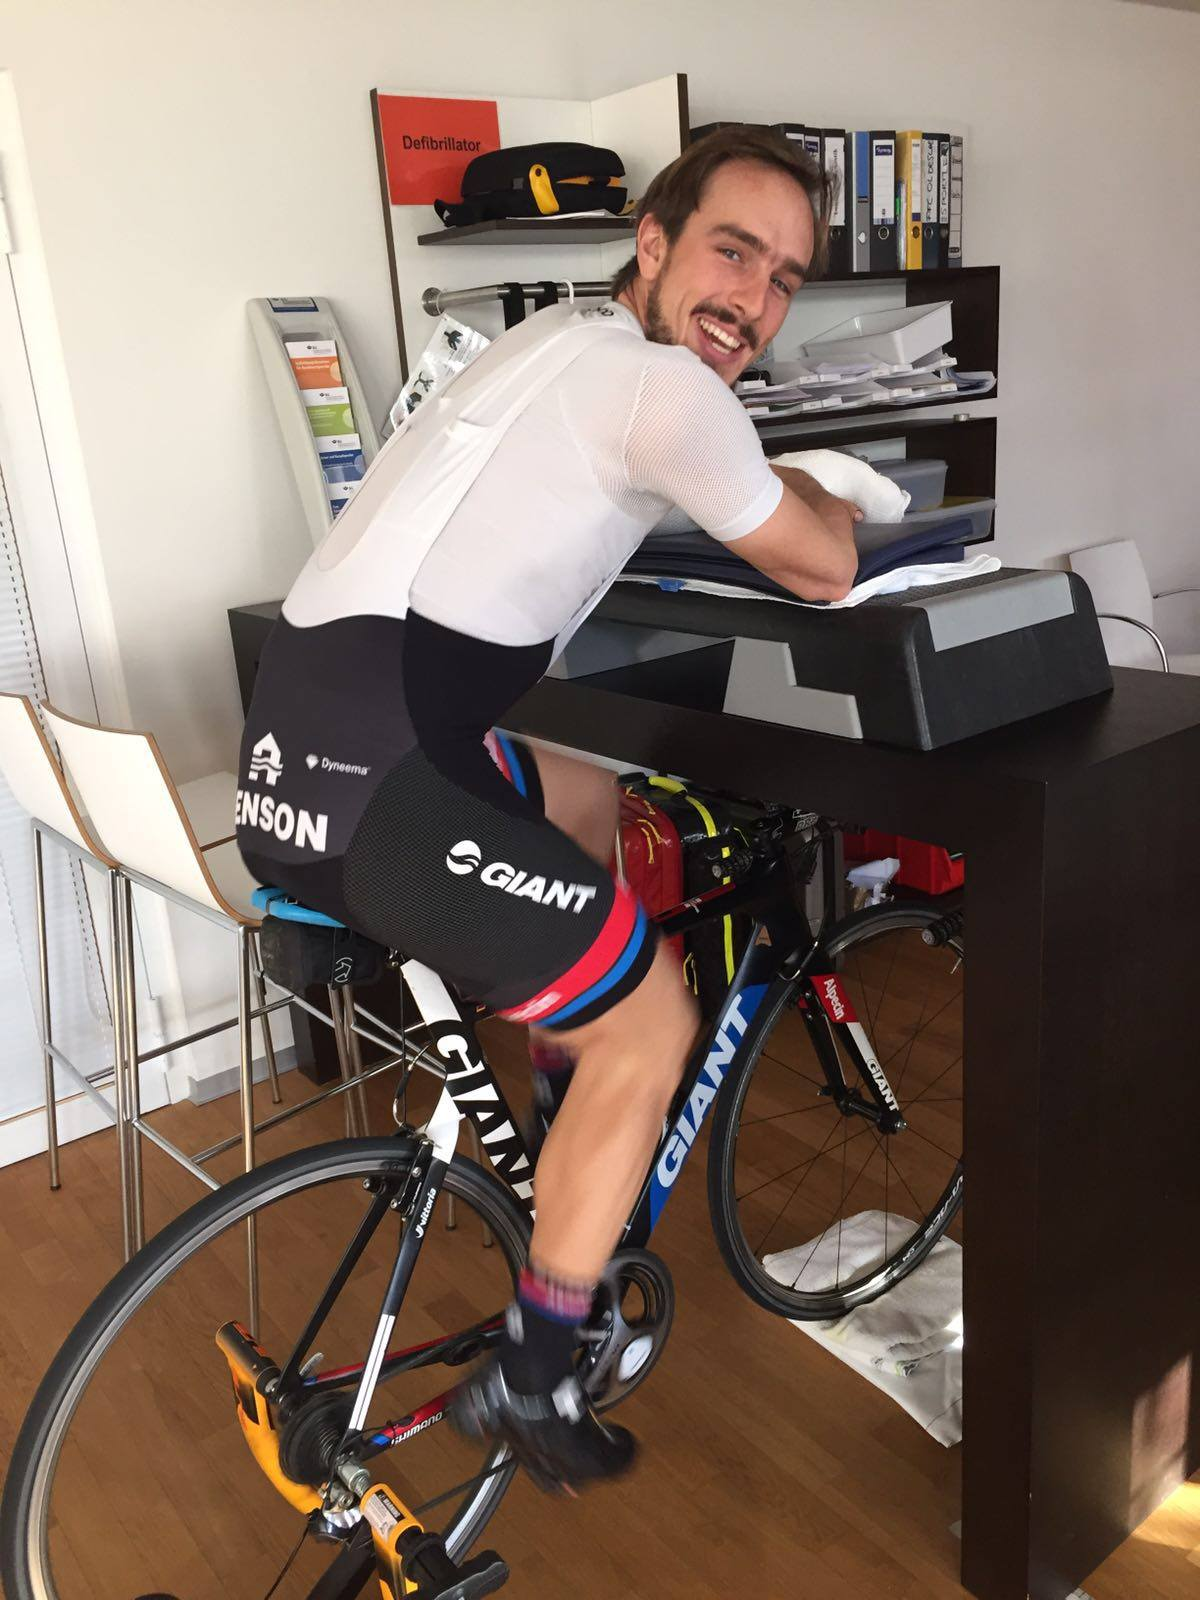 John Degenkolb with his setup as he begins to train again after his brutal crash. [Photo via his Facebook page]